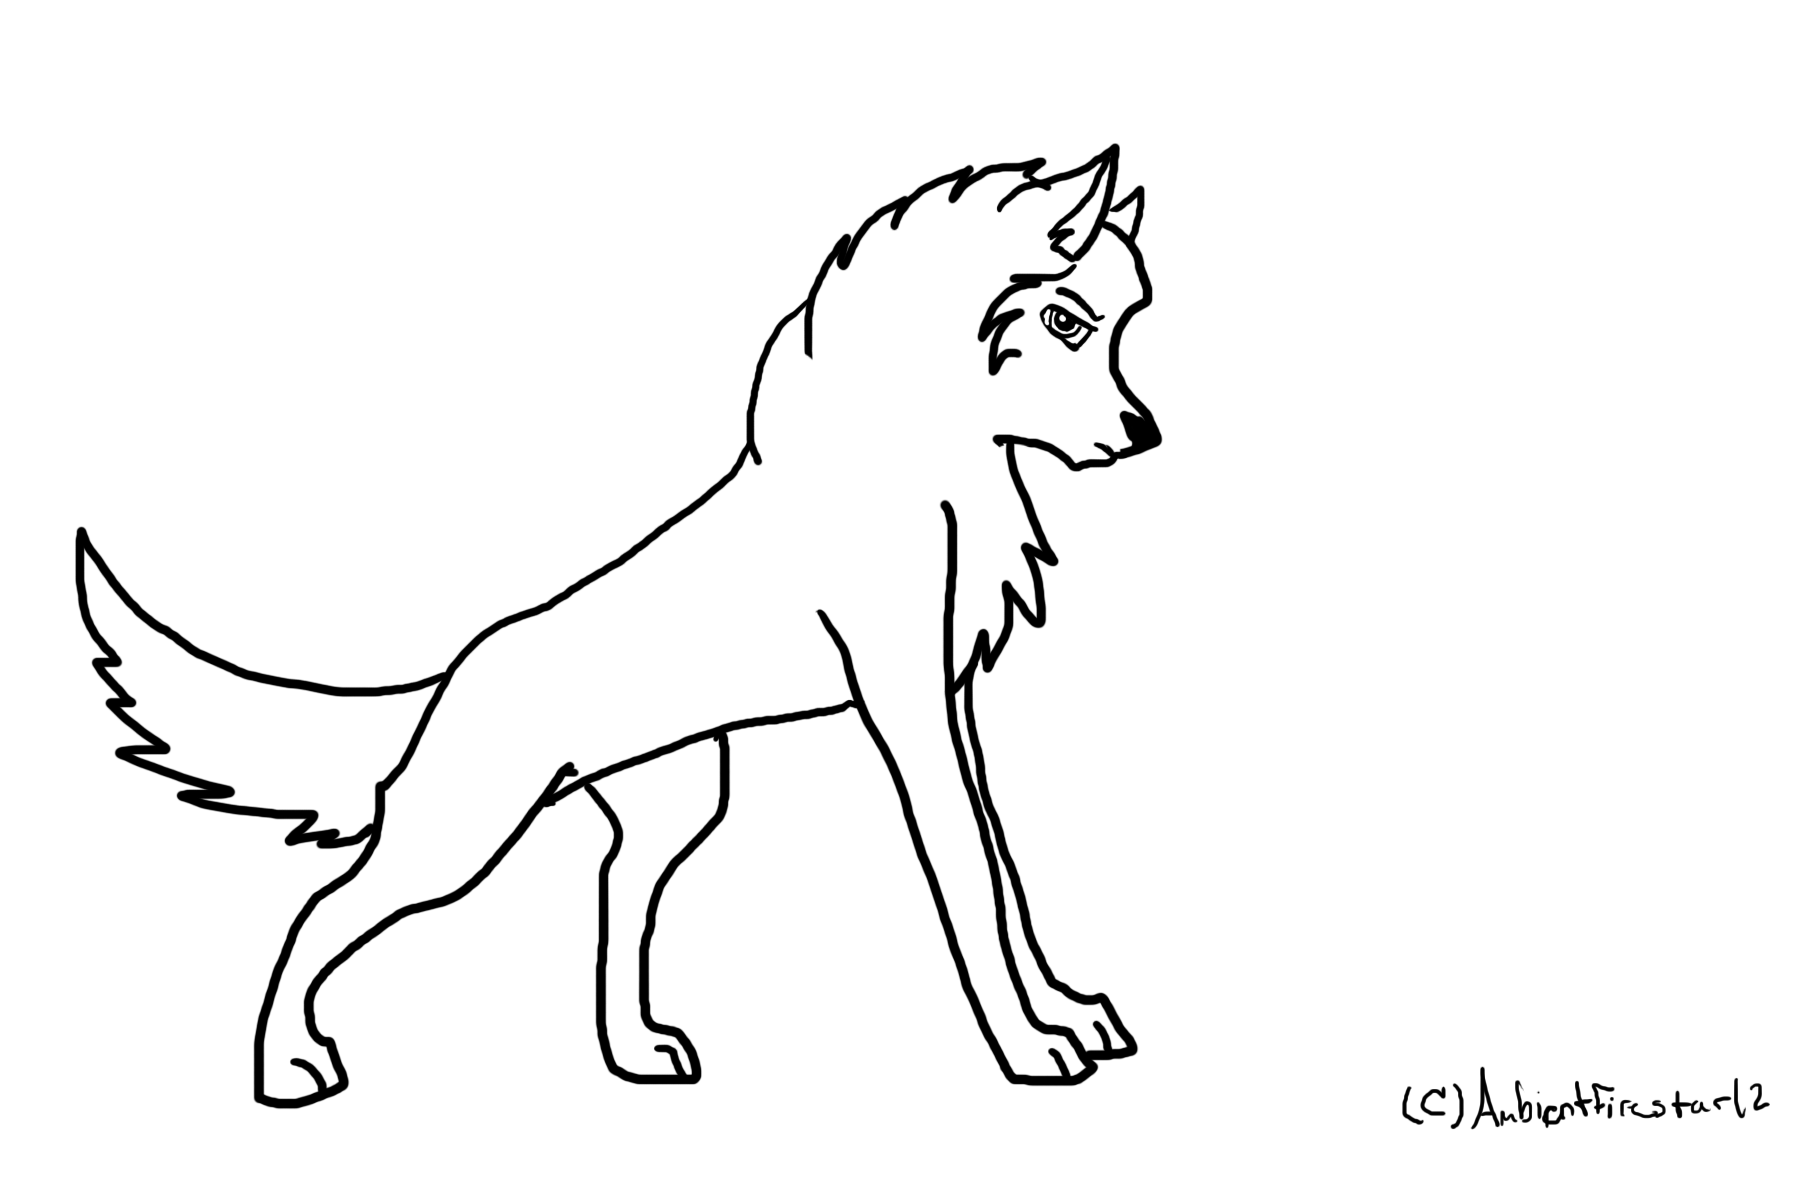 displaying 17 gt images for balto jenna coloring pages